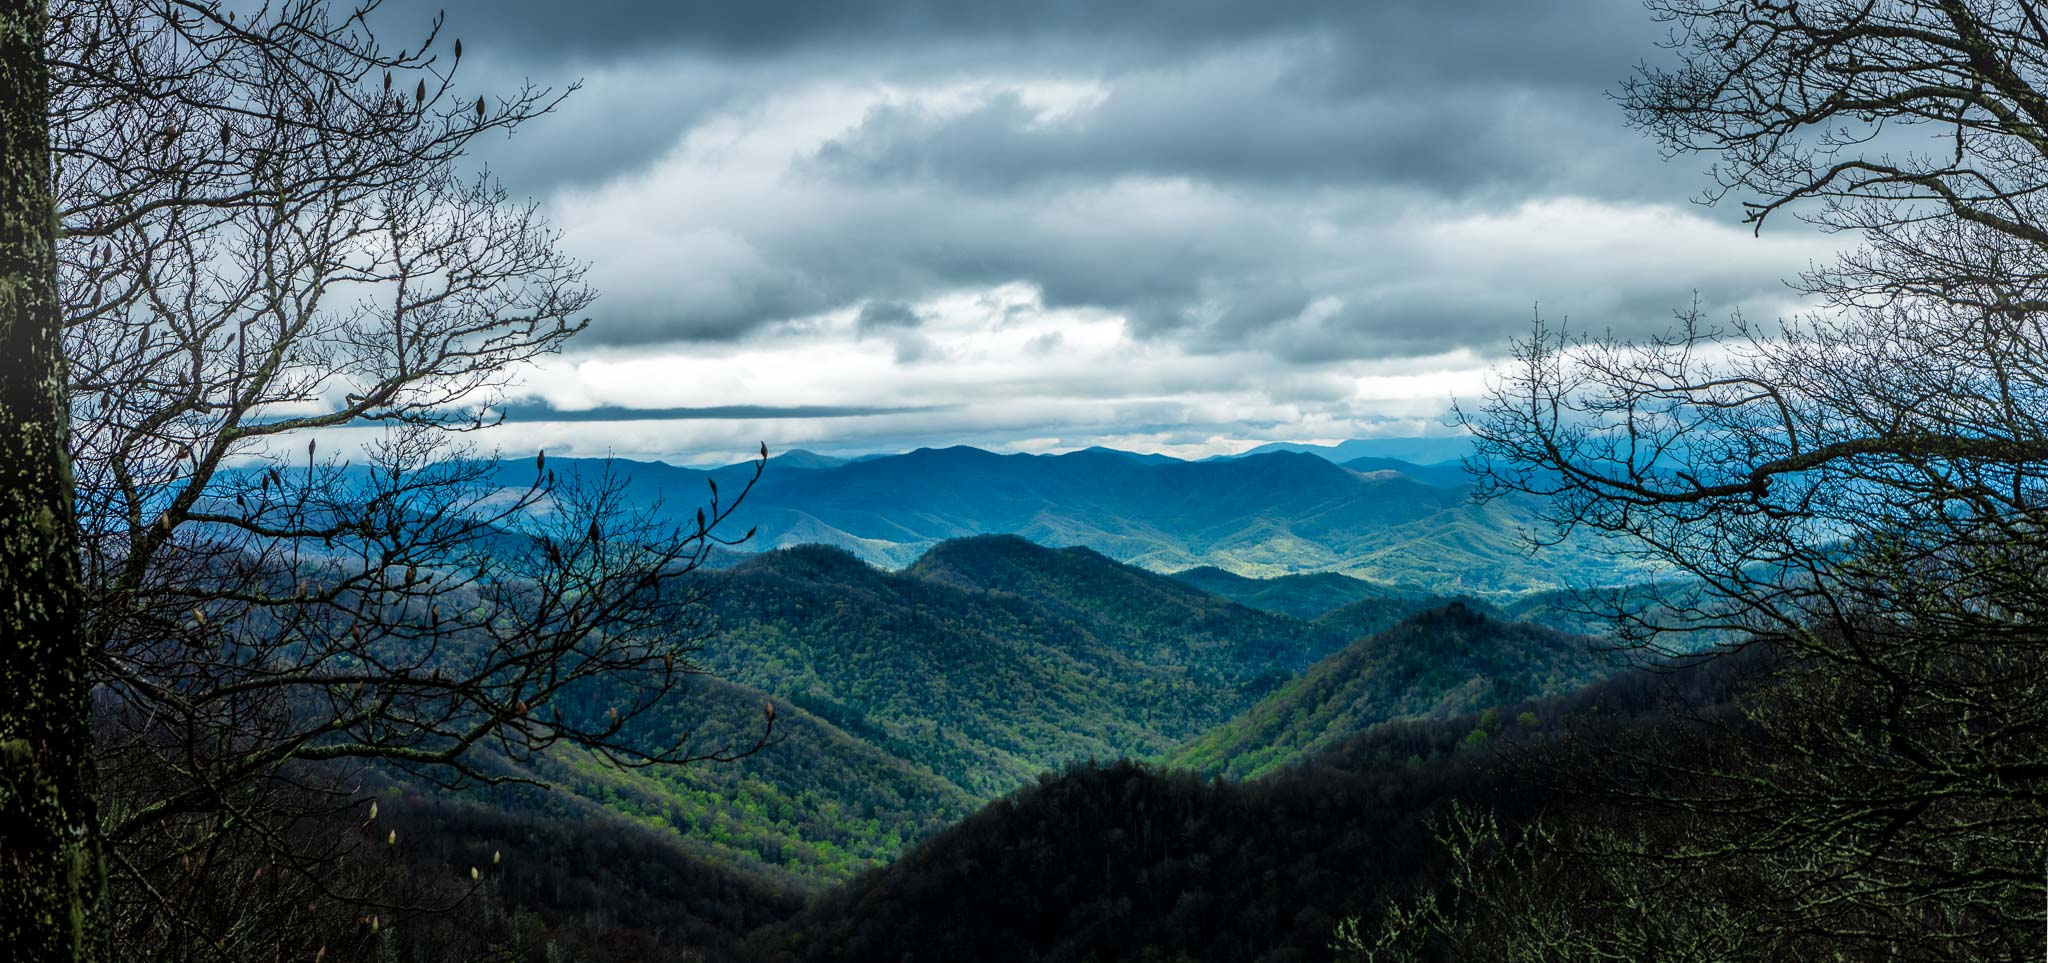 Scenic Views of Great Smoky Mountain NP